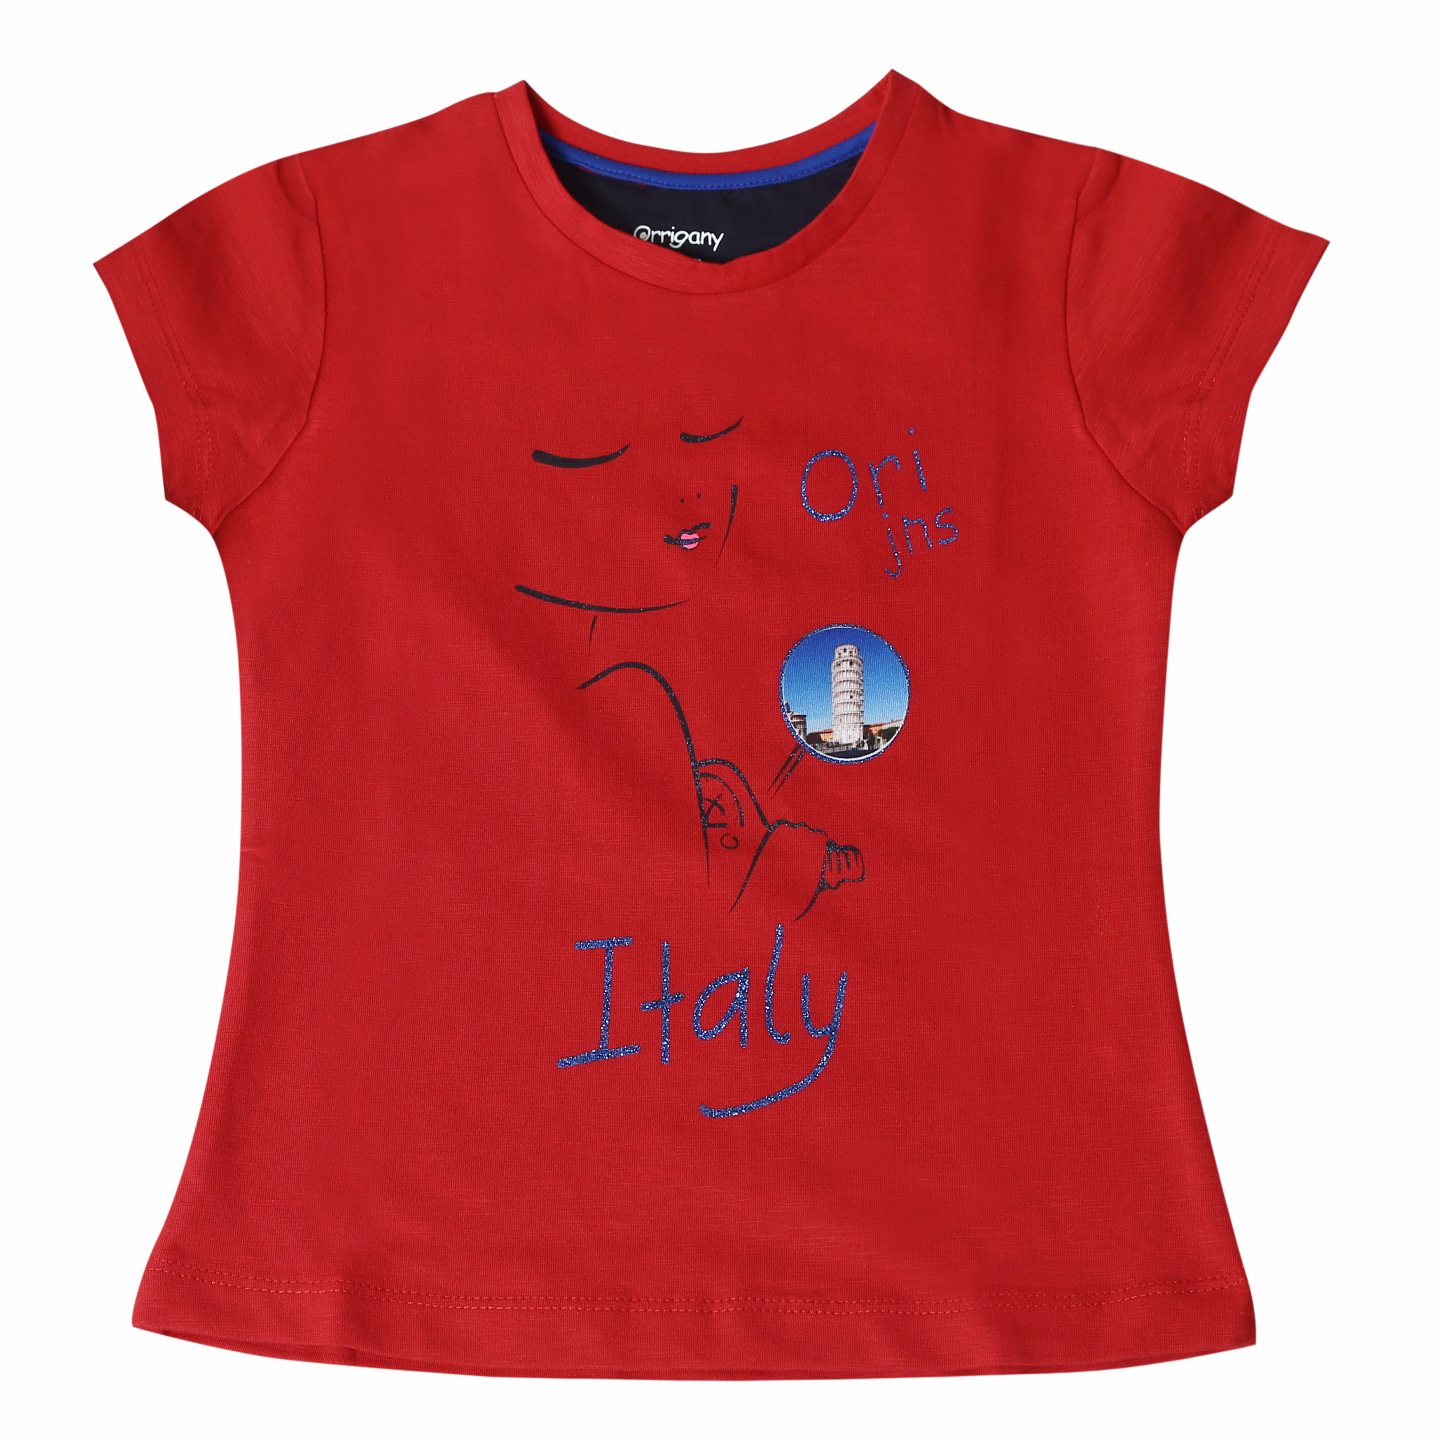 Girls T-shirt (Red)